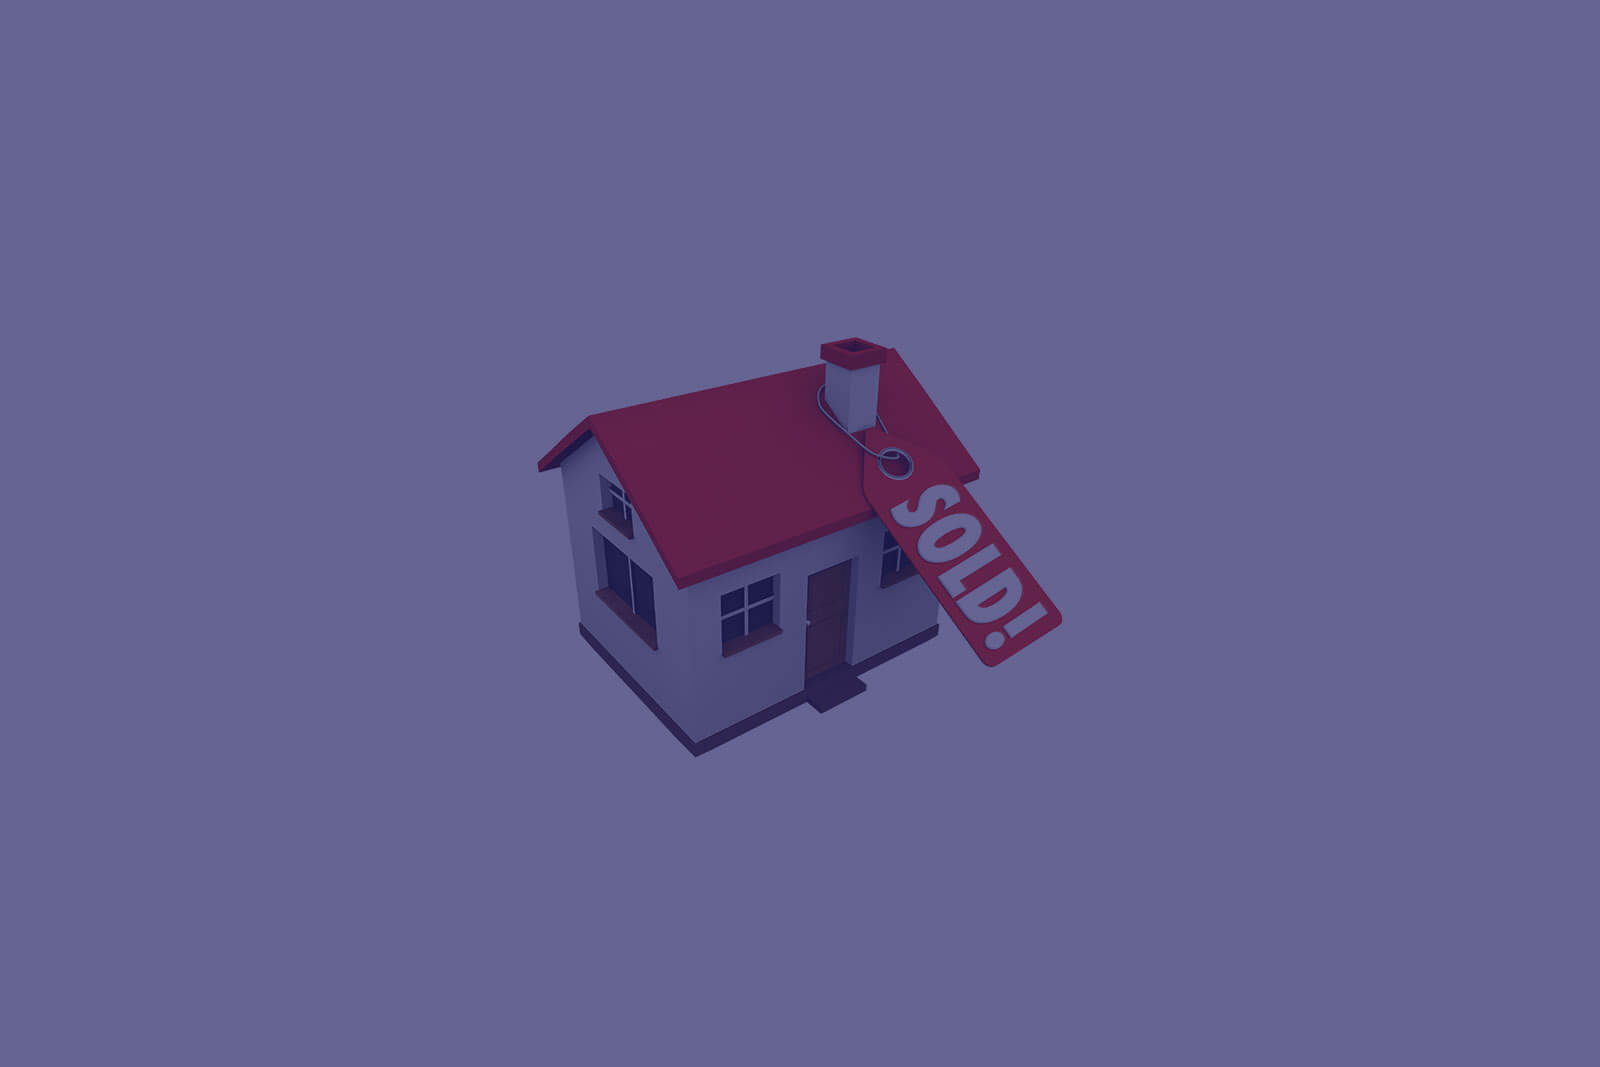 sold house gary kent homeseller university